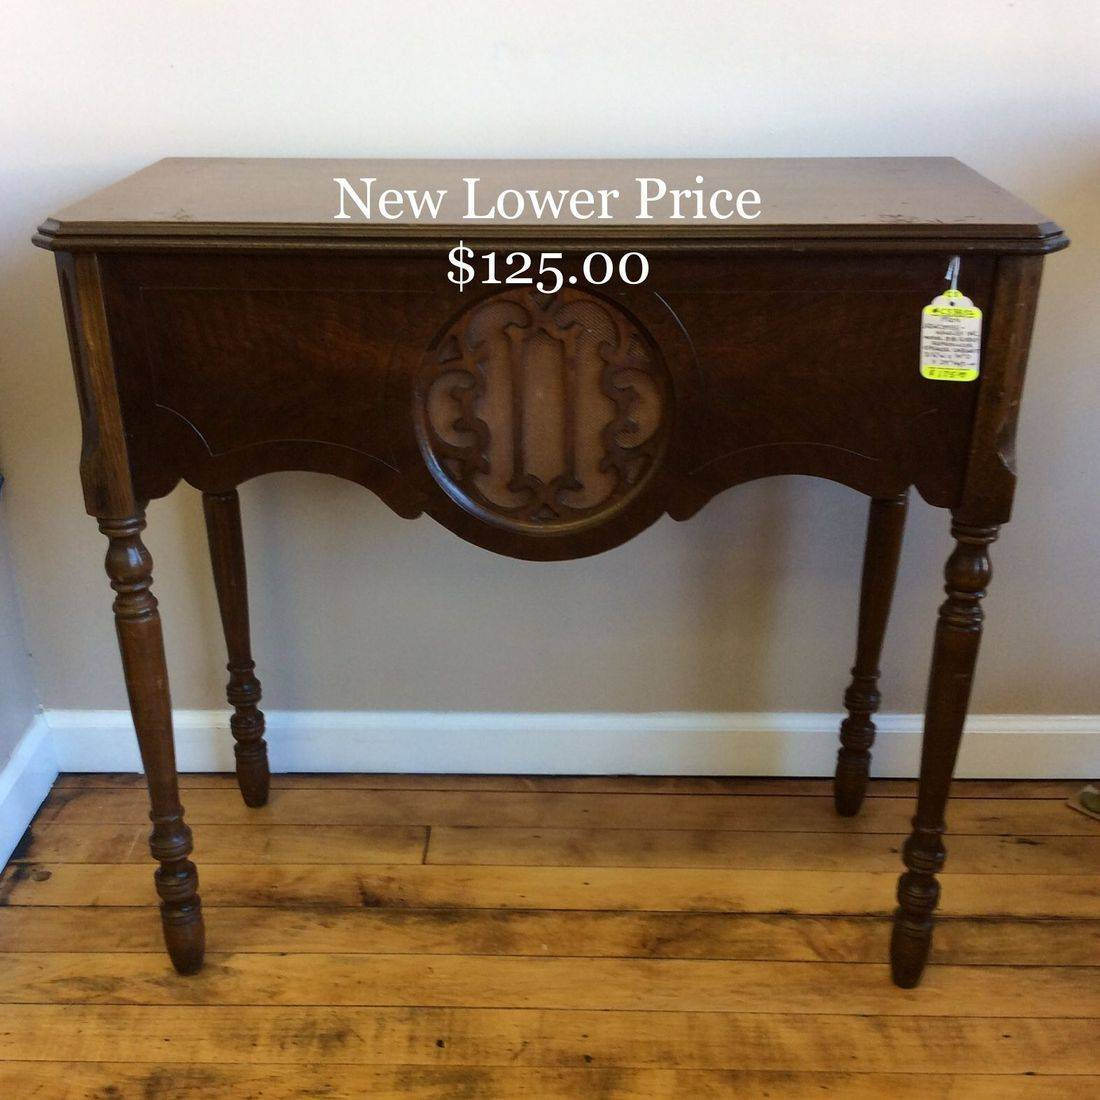 """1920's Newcombe-Hawley Model 81B, Radio Reproducer Speaker Cabinet   31-1/4""""W x 14""""D x 29""""H  """"New Lower Price""""  $125.00"""